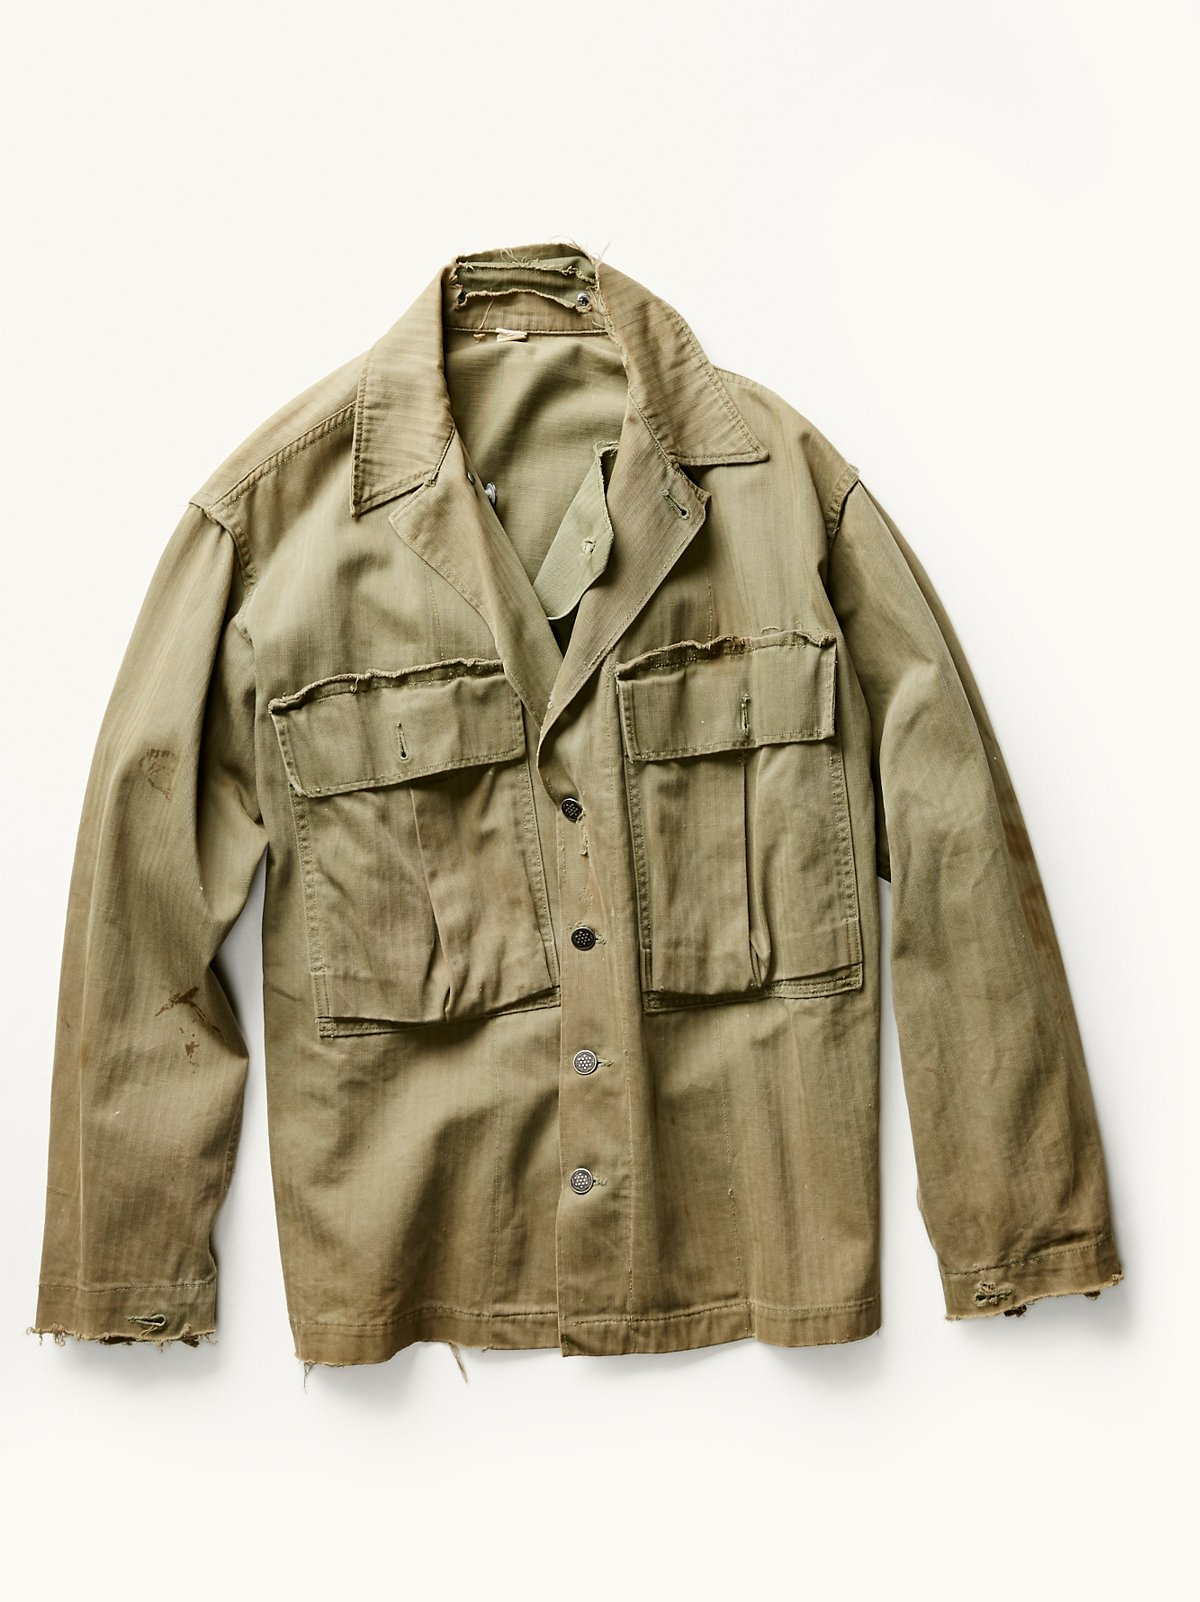 Vintage 1940s Military Shirt